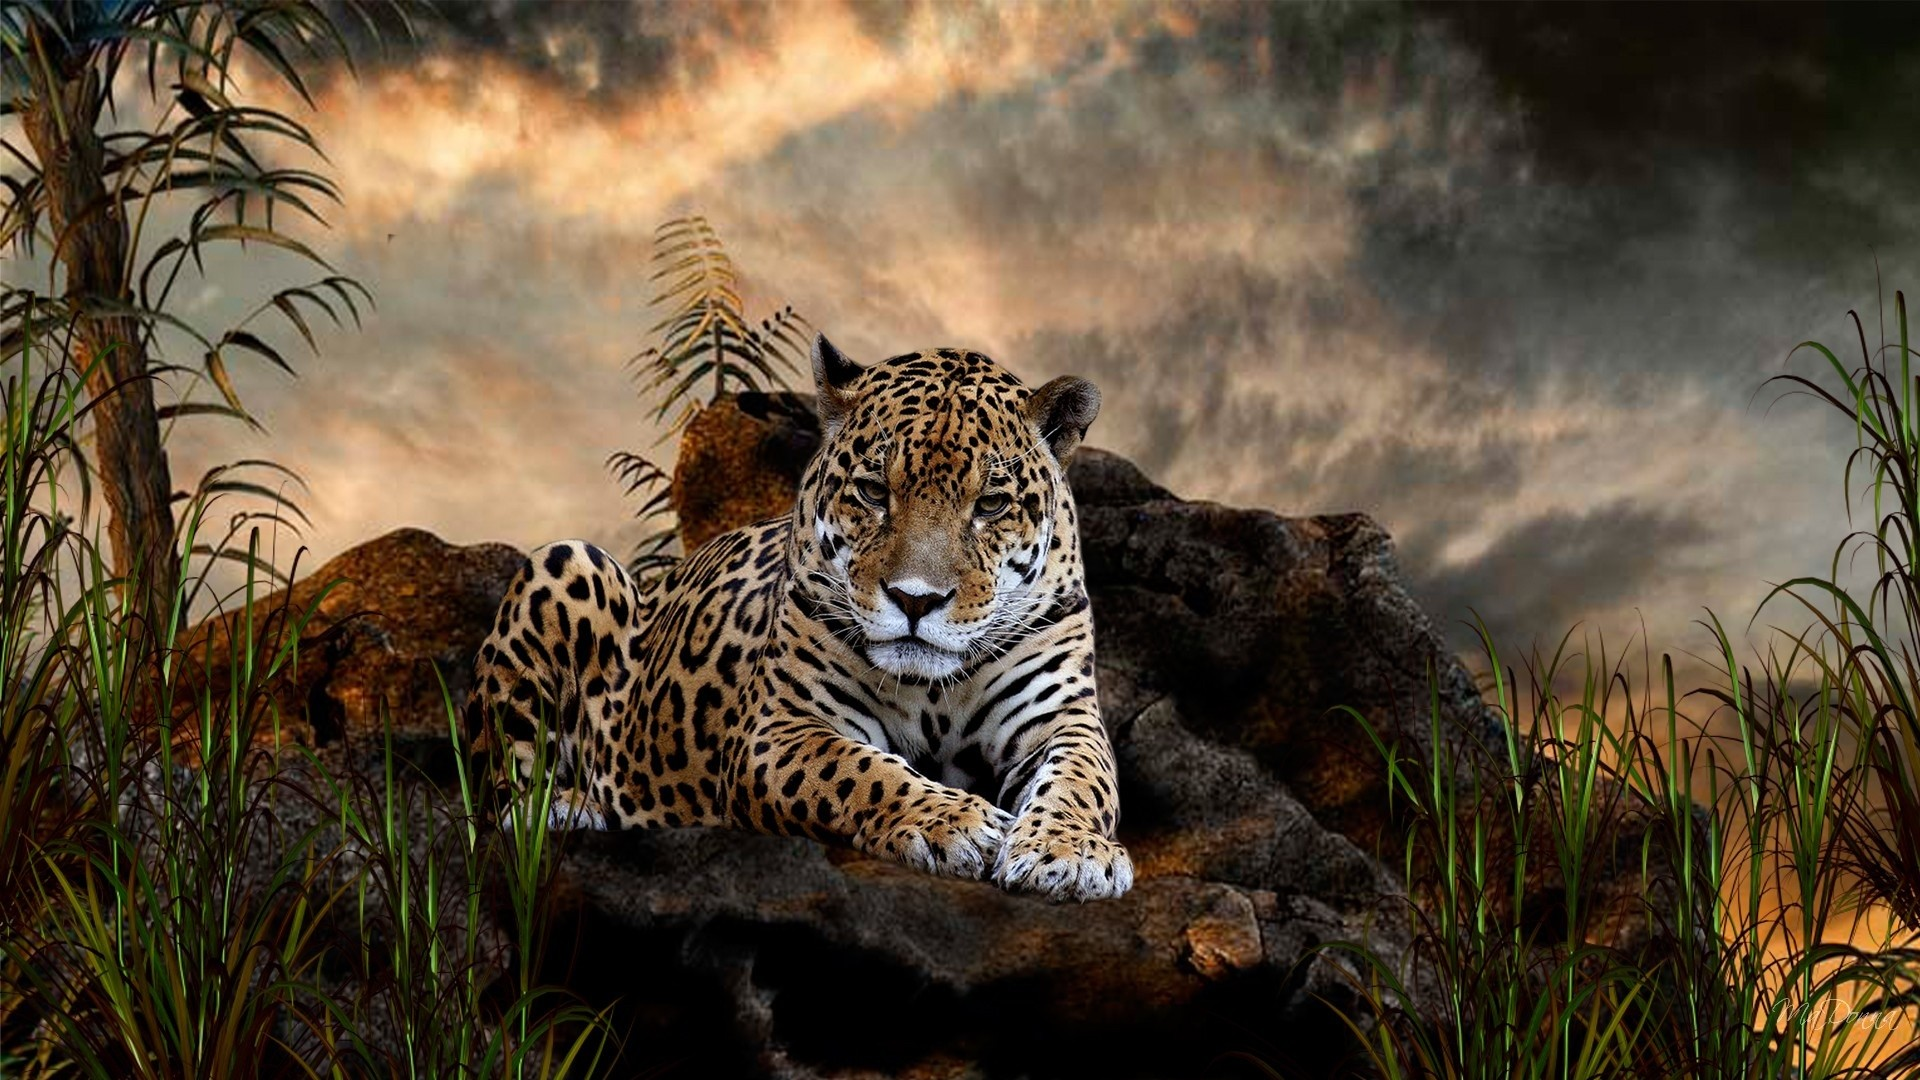 Wild Animal Wallpaper For Pc Widescreen | View HD